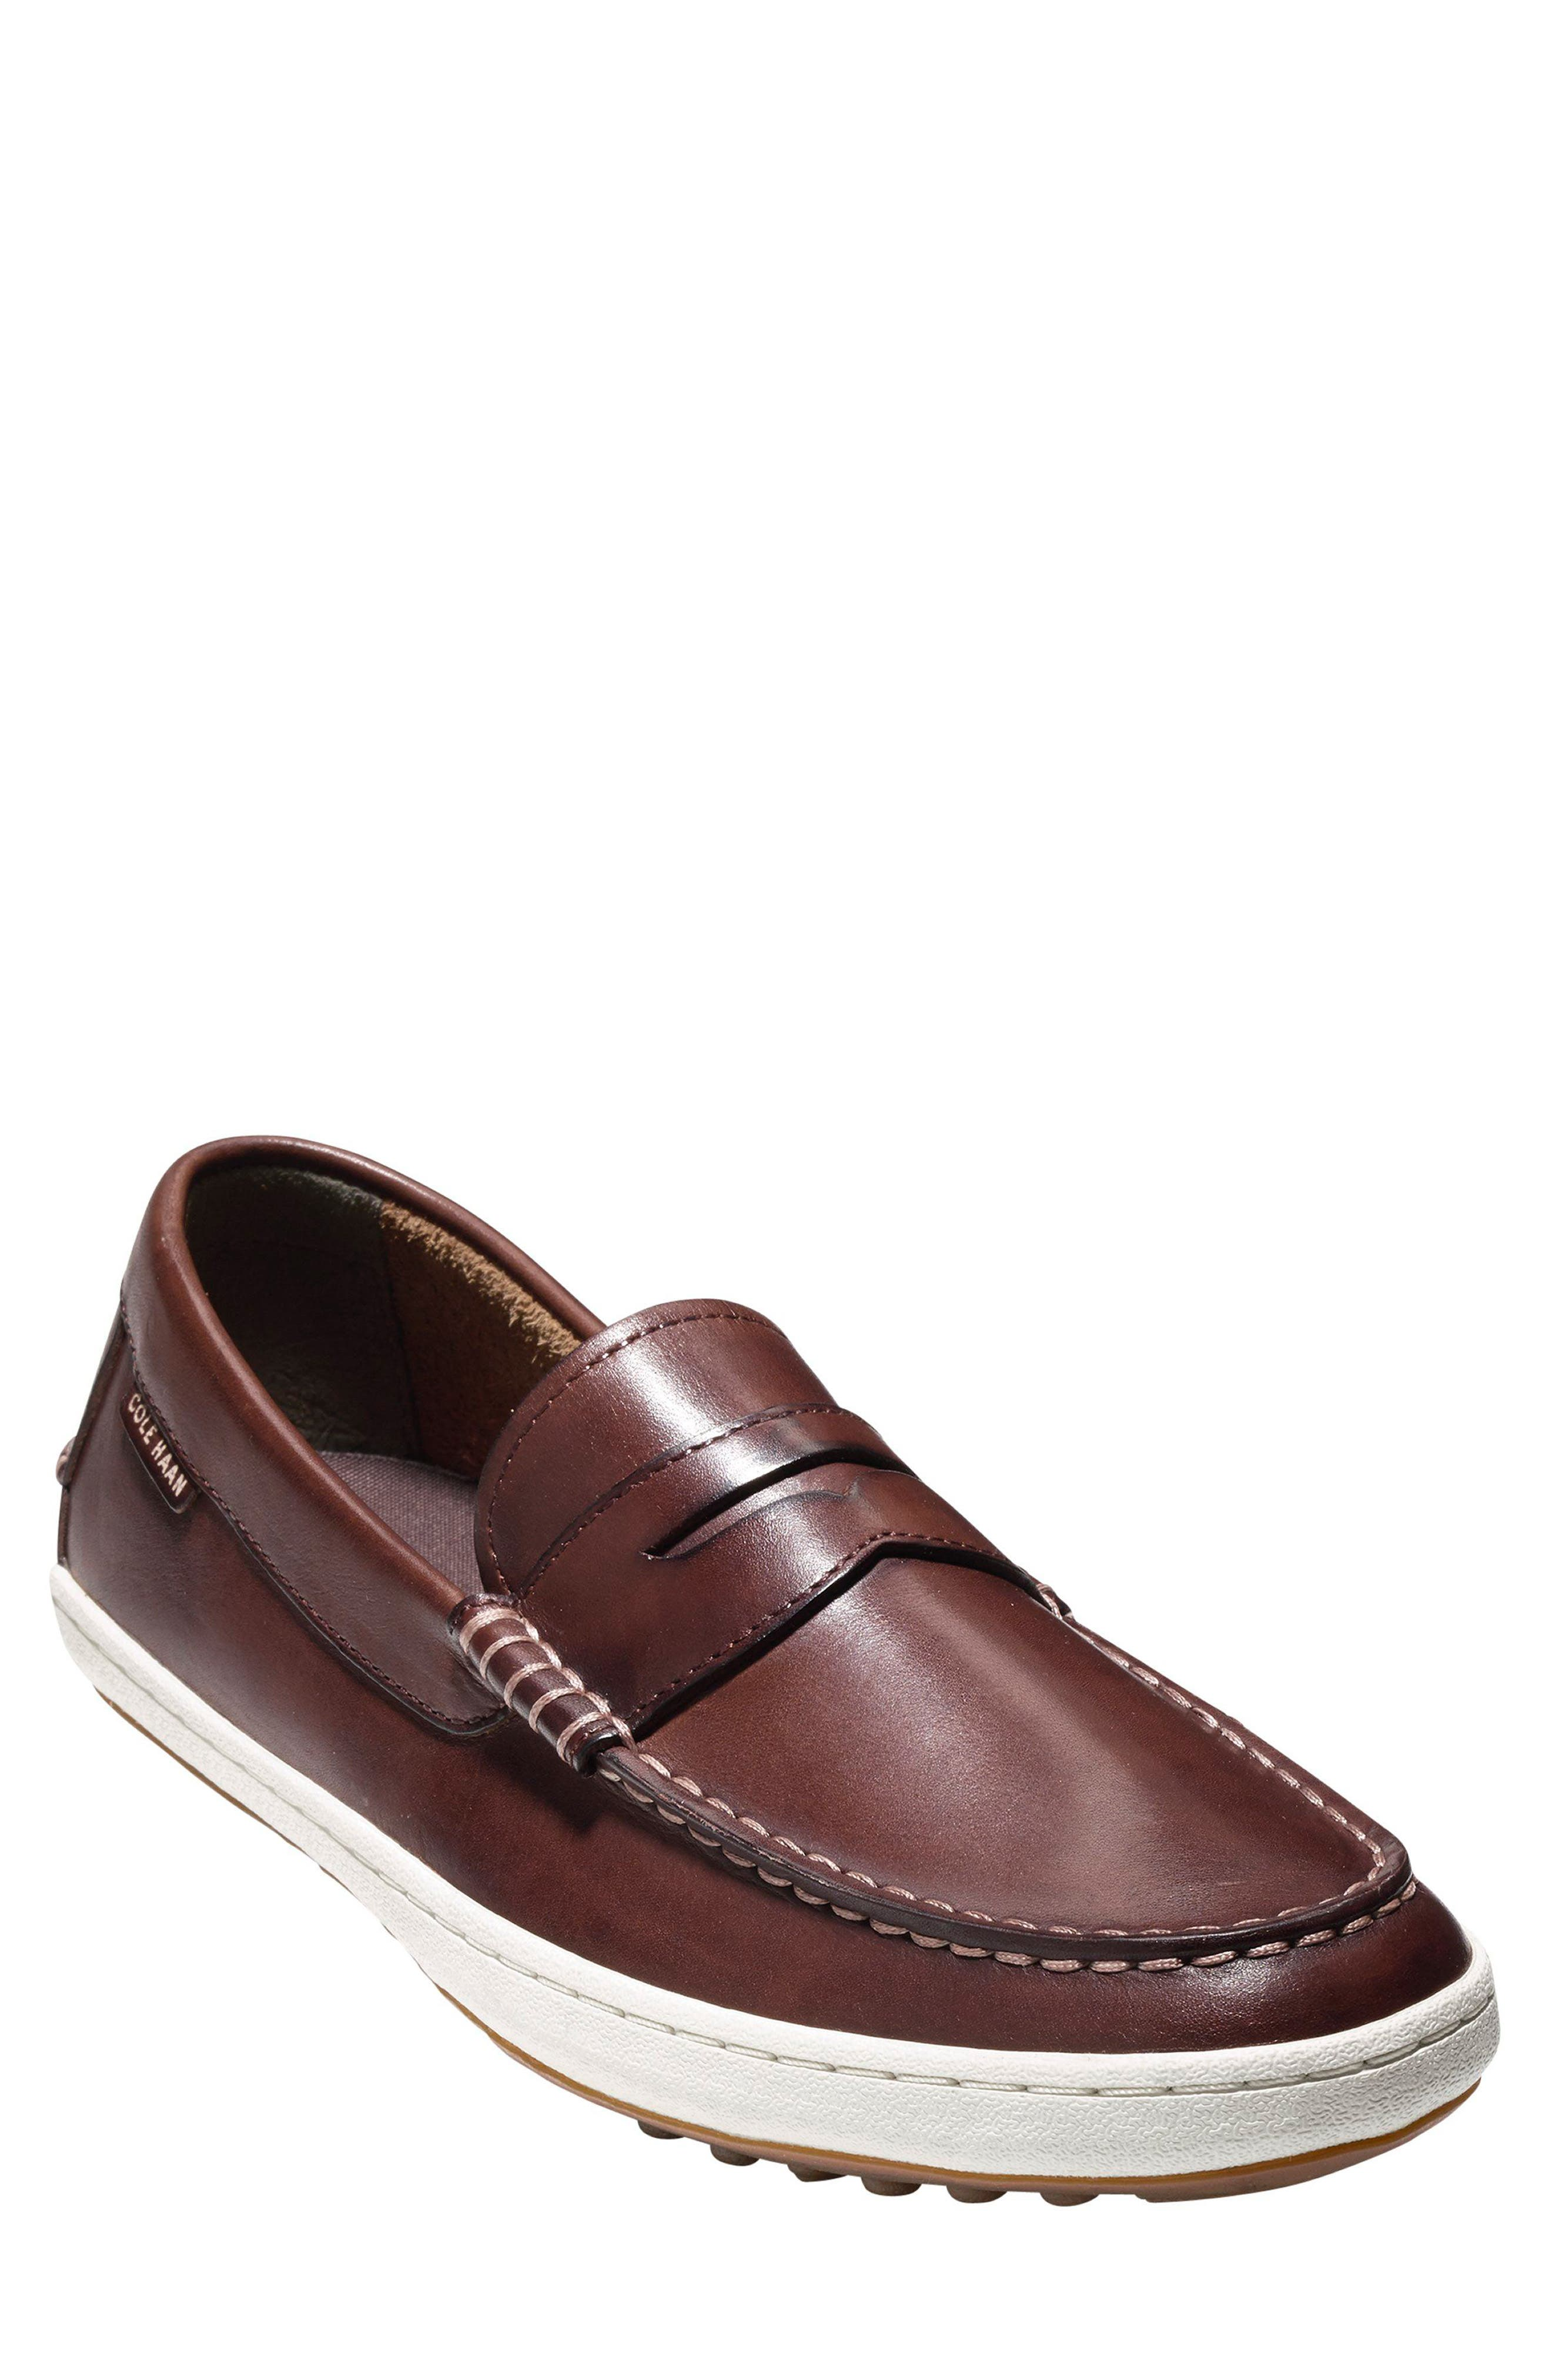 'Pinch Roadtrip' Penny Loafer,                             Main thumbnail 1, color,                             Woodbury Leather